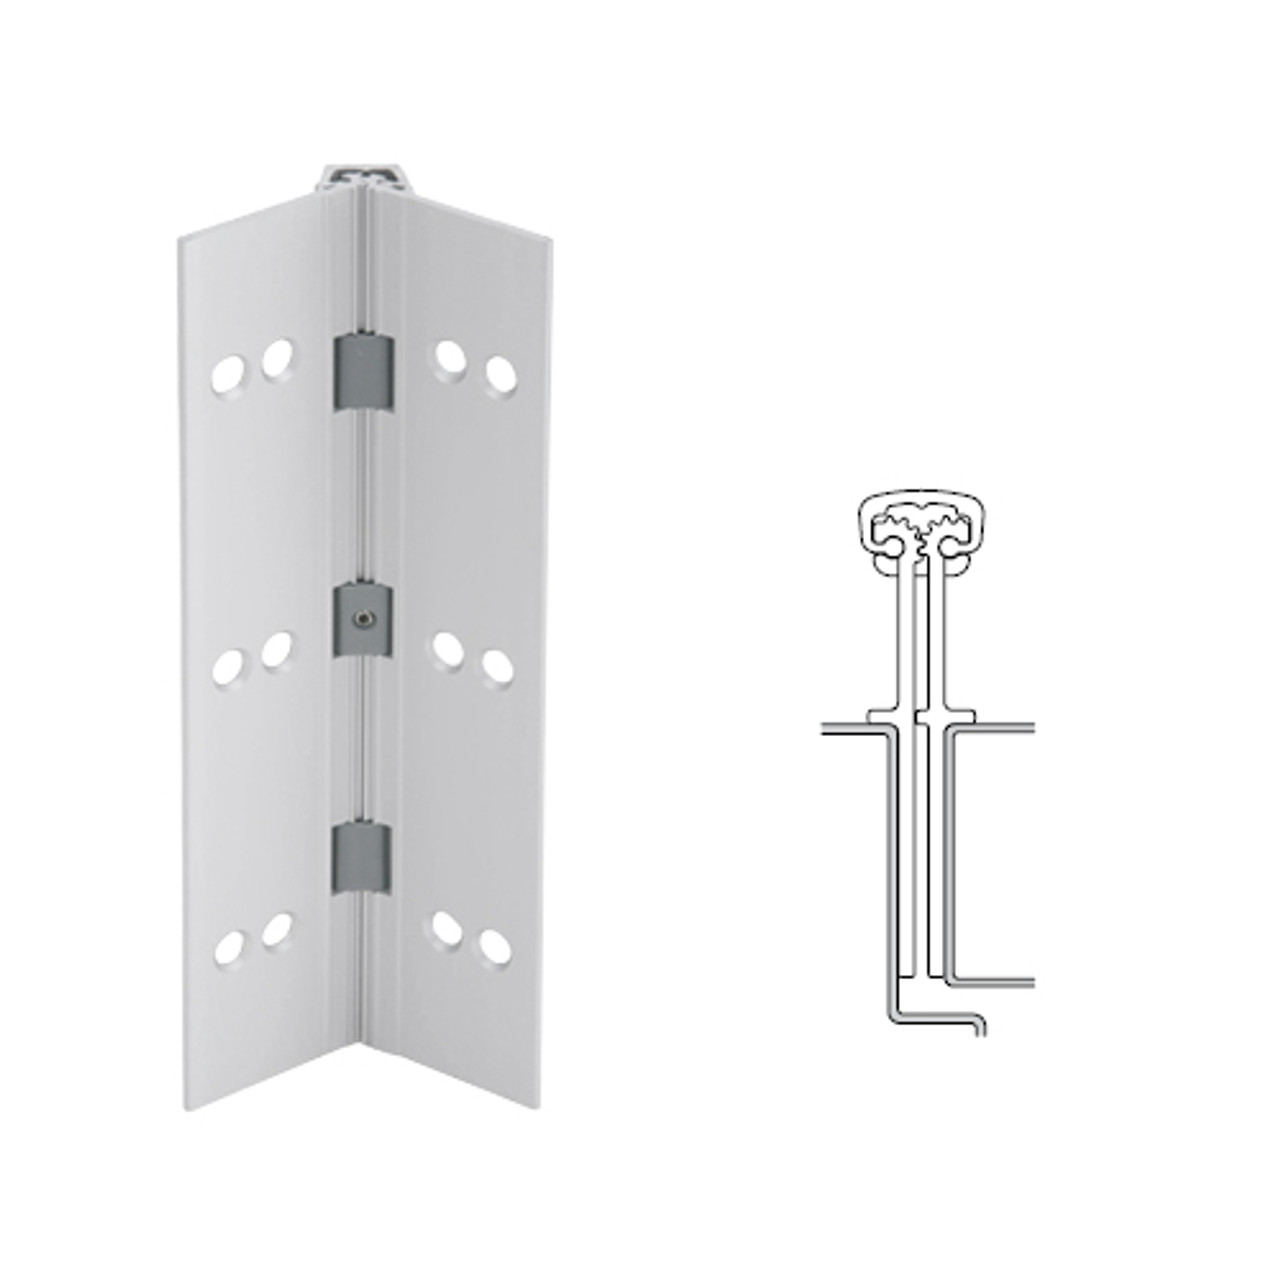 040XY-US28-120-SECHM IVES Full Mortise Continuous Geared Hinges with Security Screws - Hex Pin Drive in Satin Aluminum